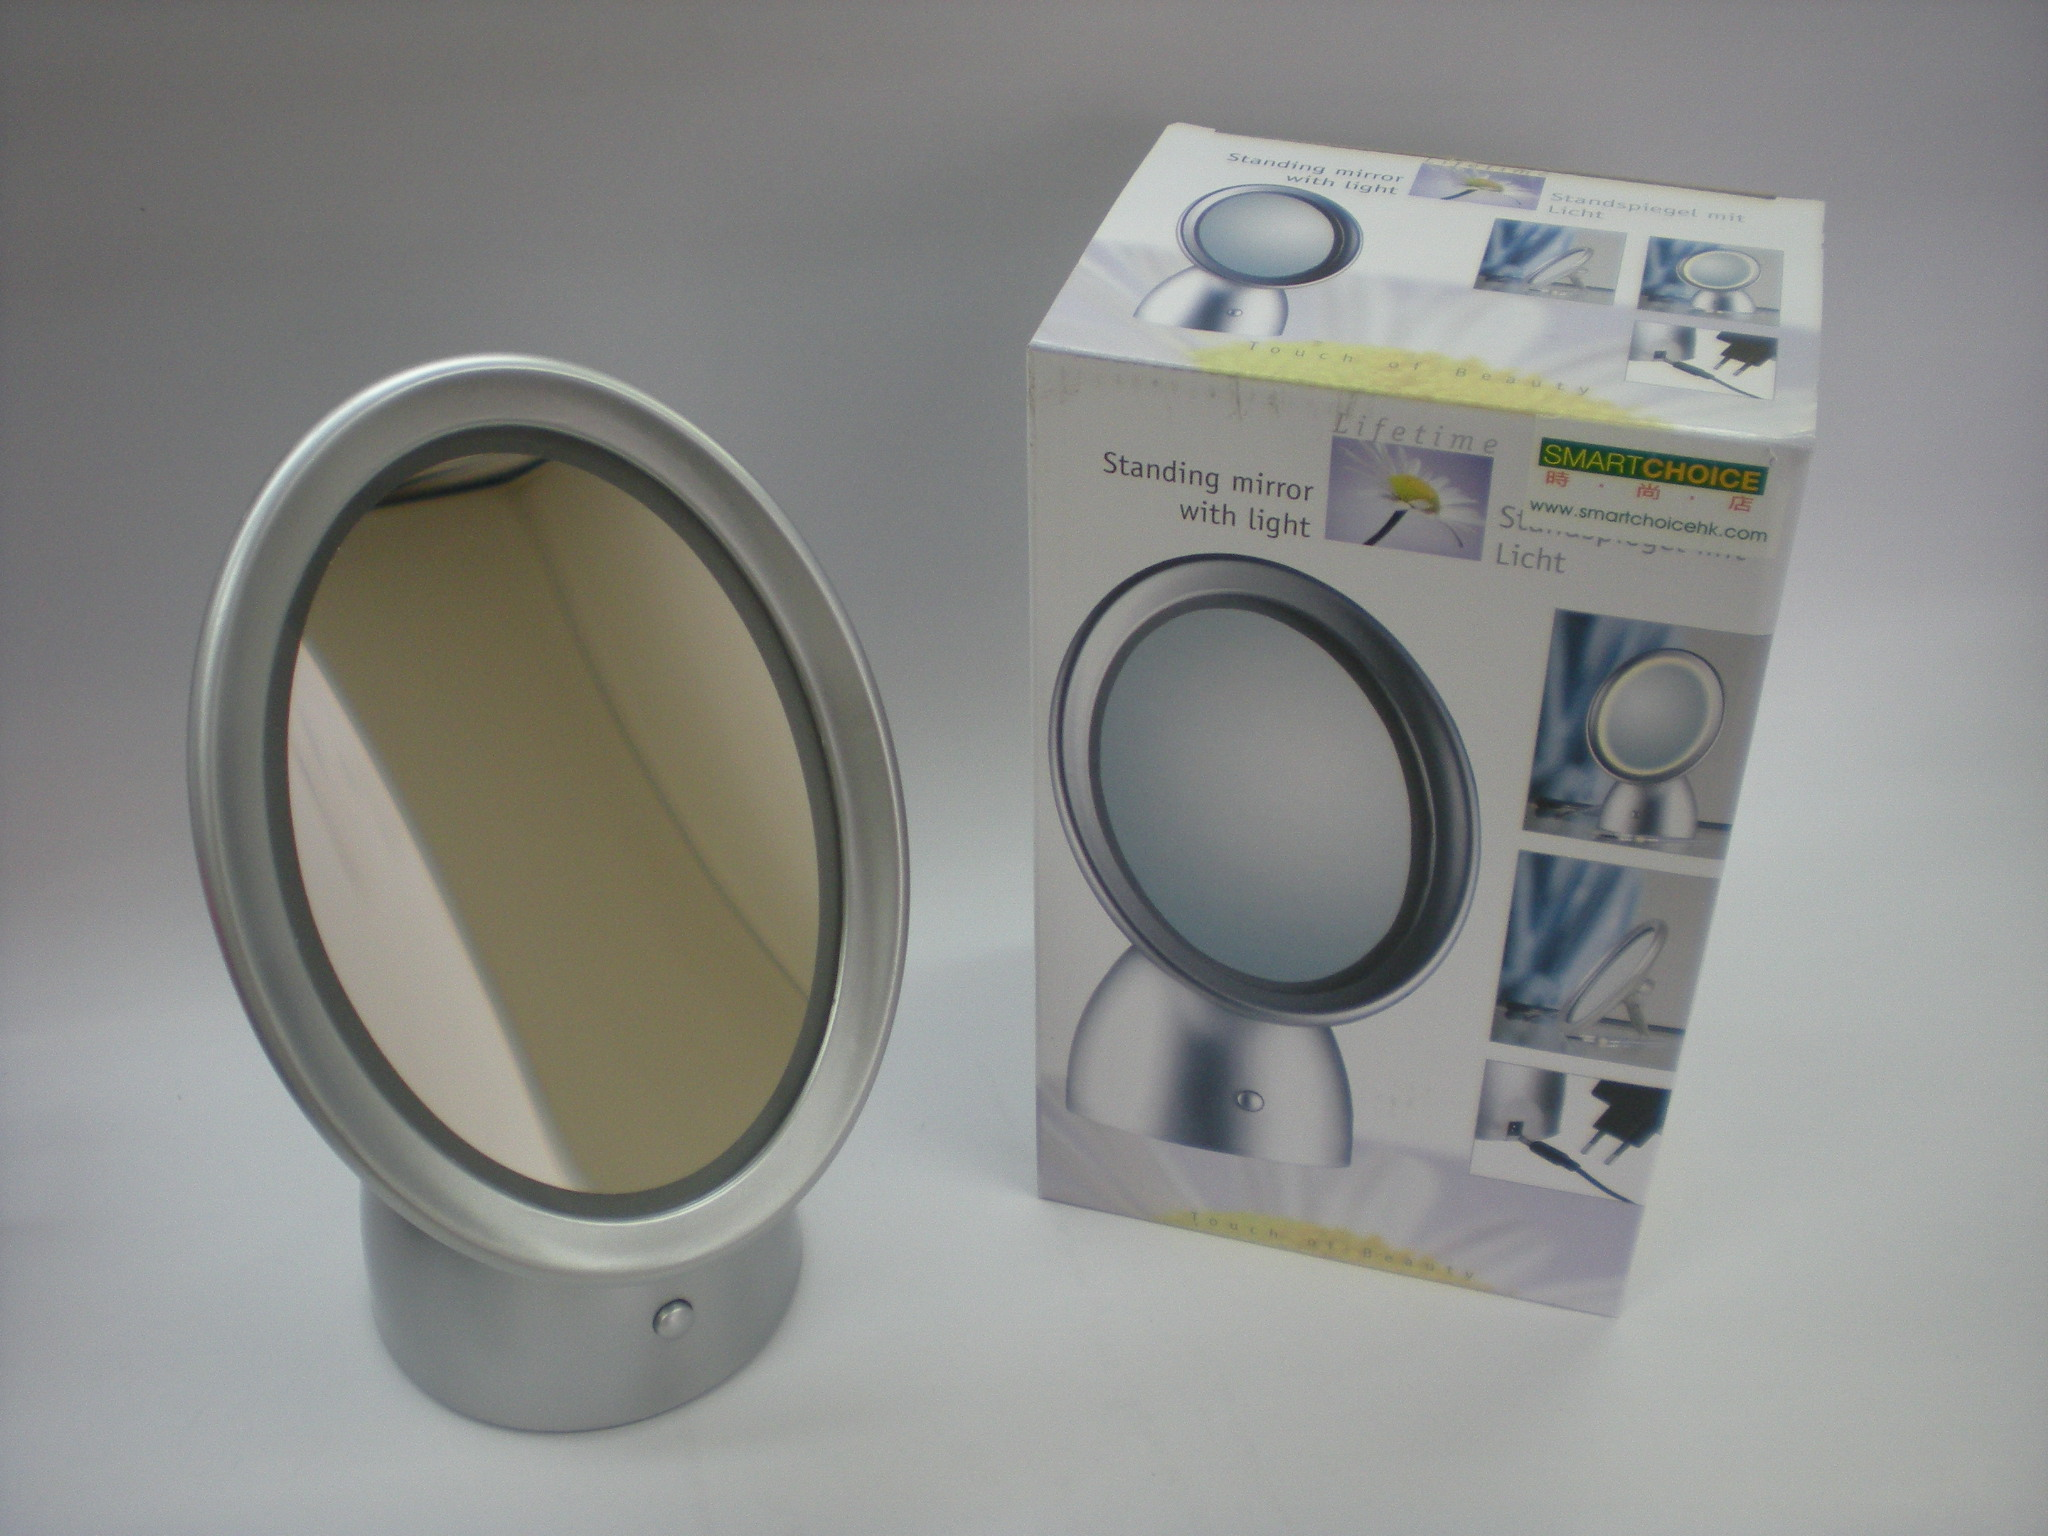 K6058 STANDING MIRROR WITH LIGHT